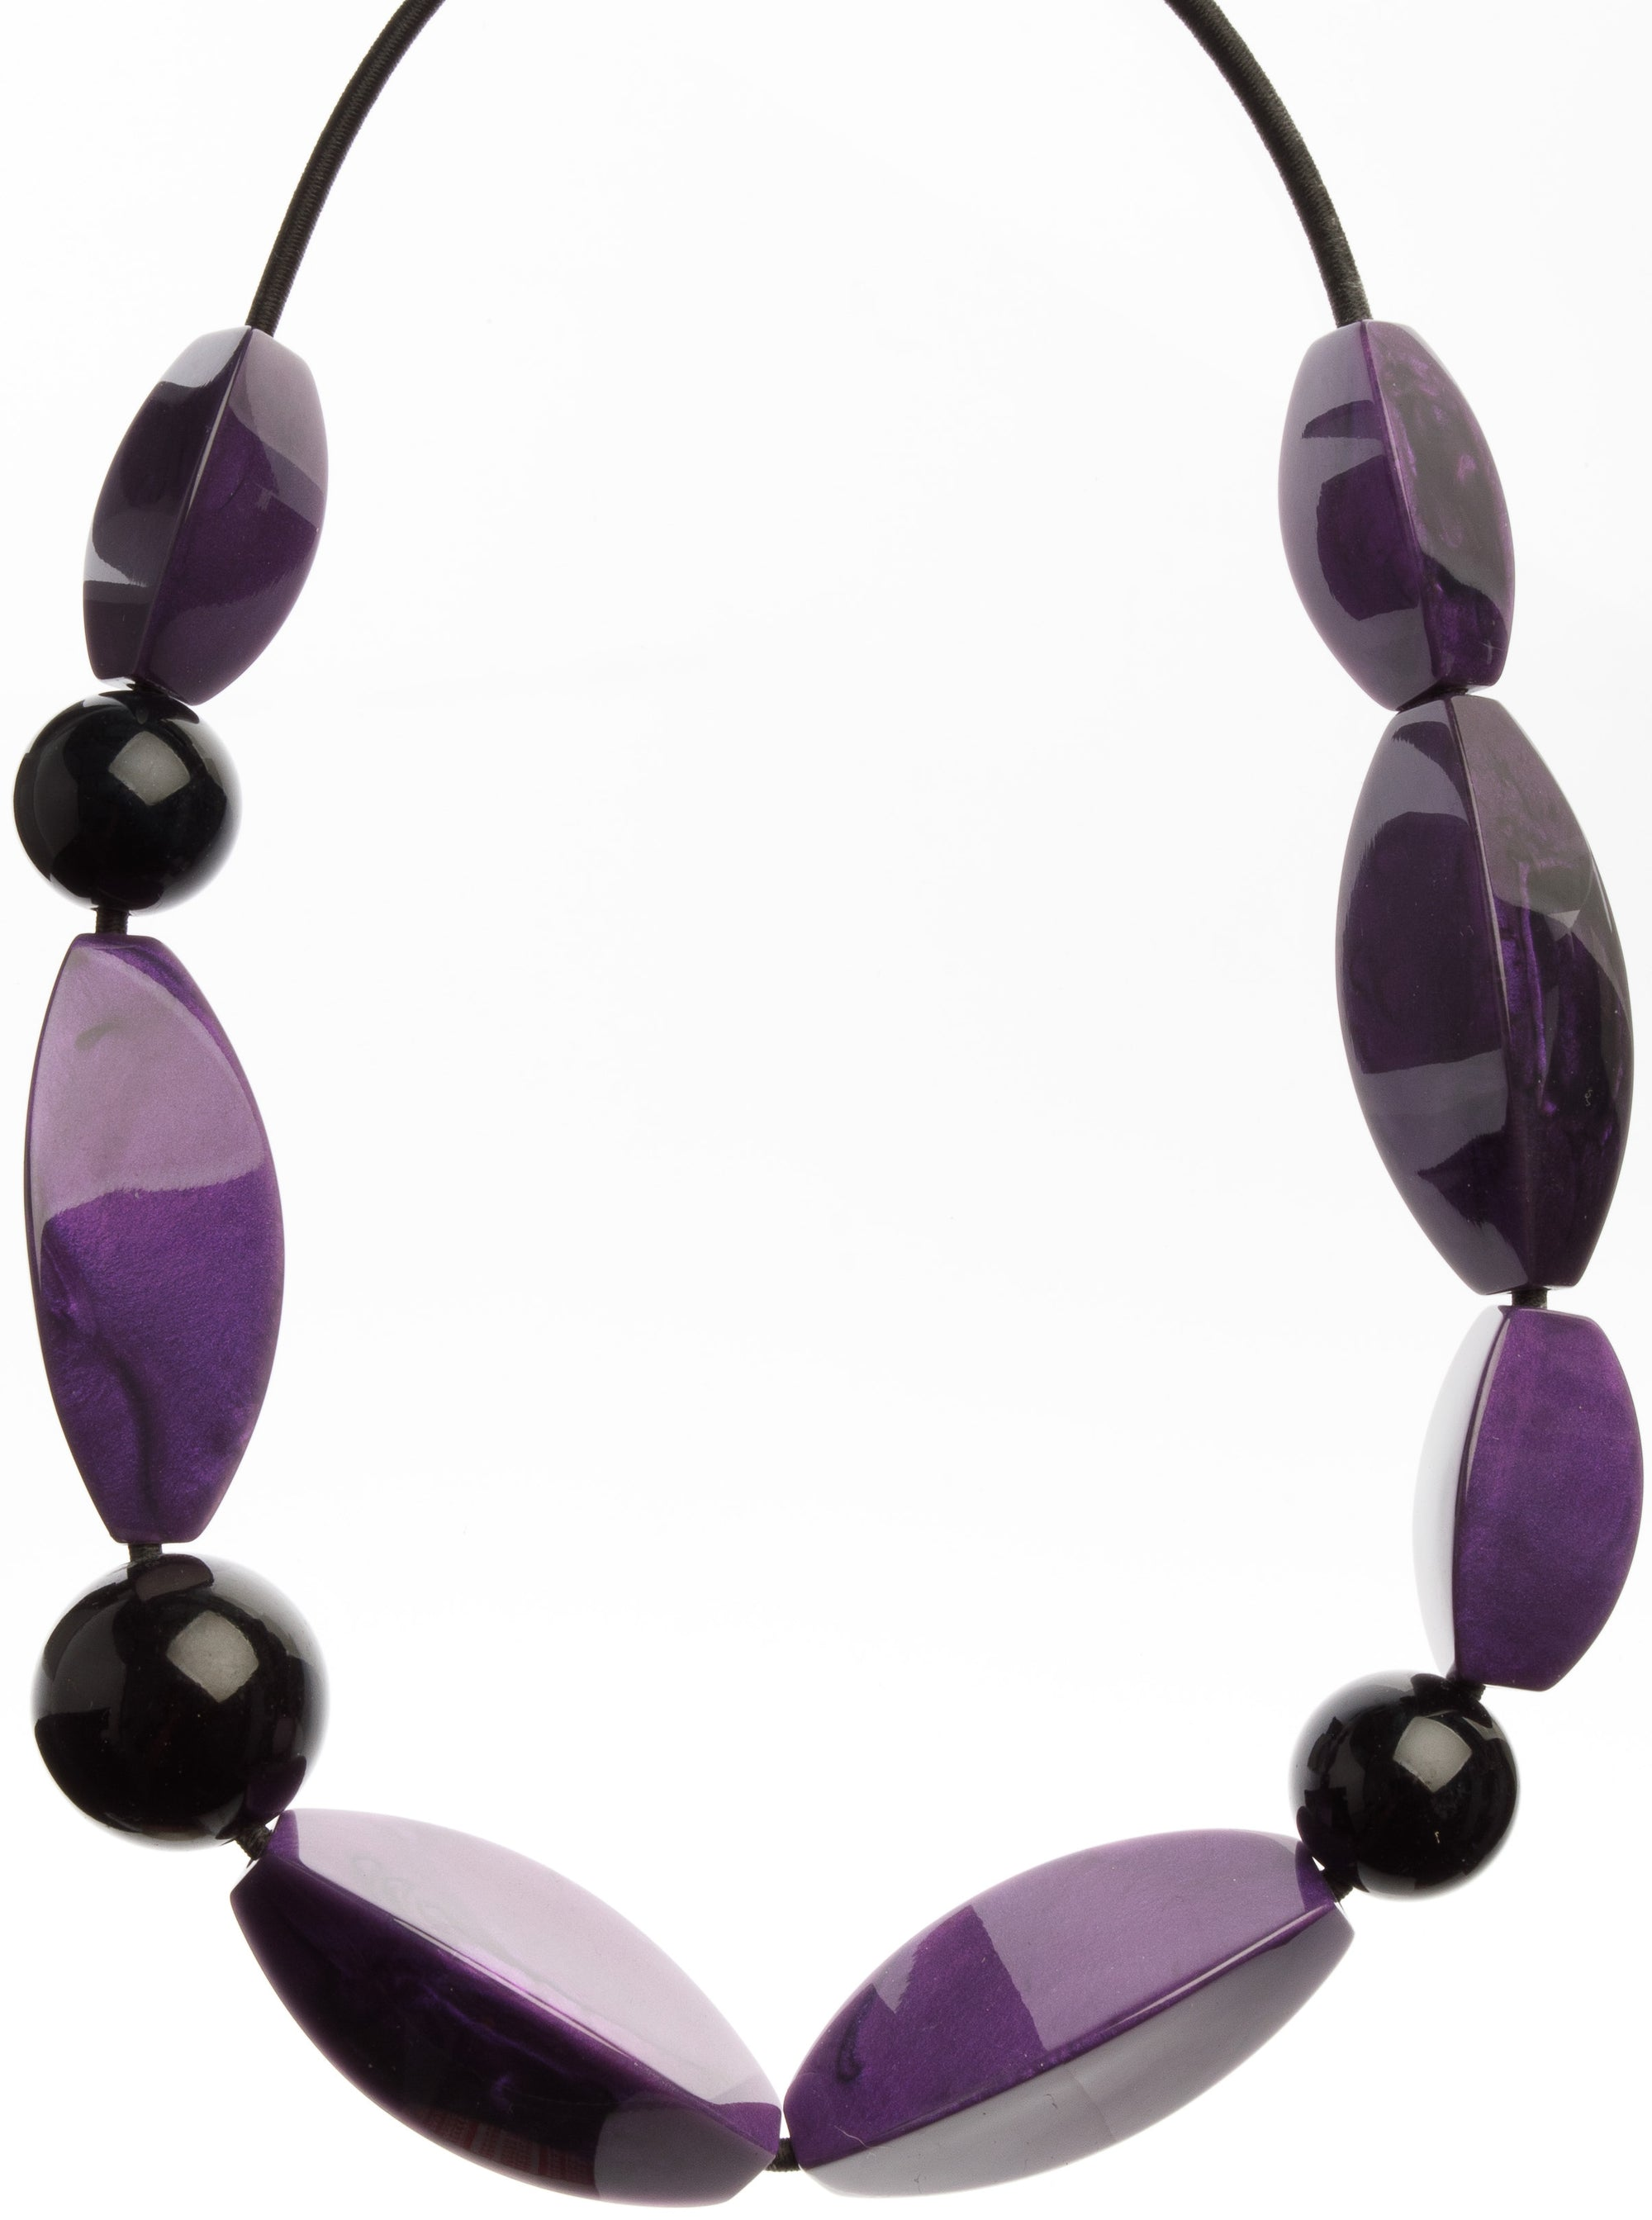 Zsiska Bossa Nova Purple and Black Necklace 10 beads